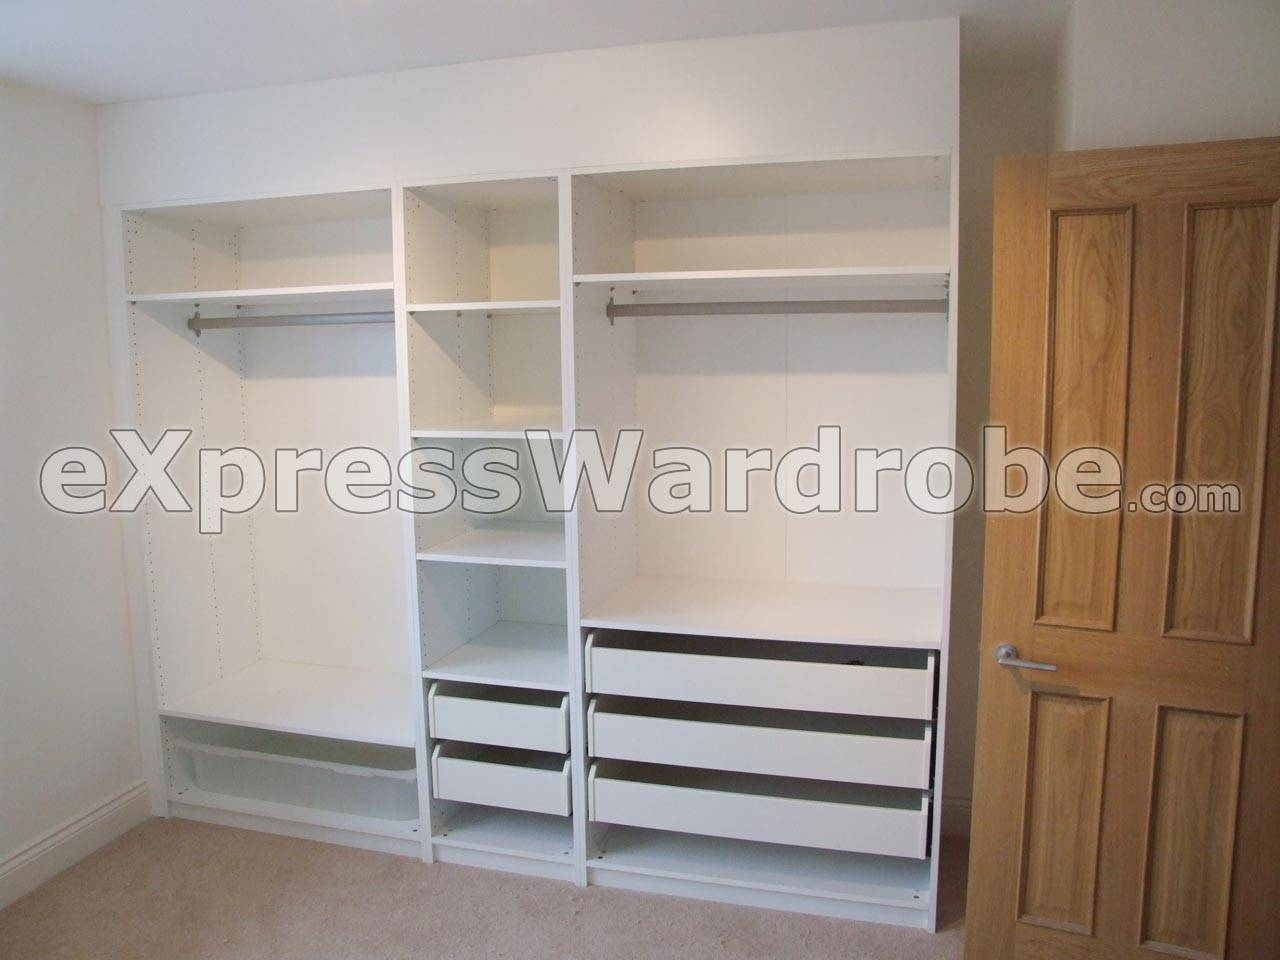 Cheap Fitted Wardrobes | Fitted Bedrooms | Fitted Bedroom within Wardrobes Cheap (Image 7 of 15)